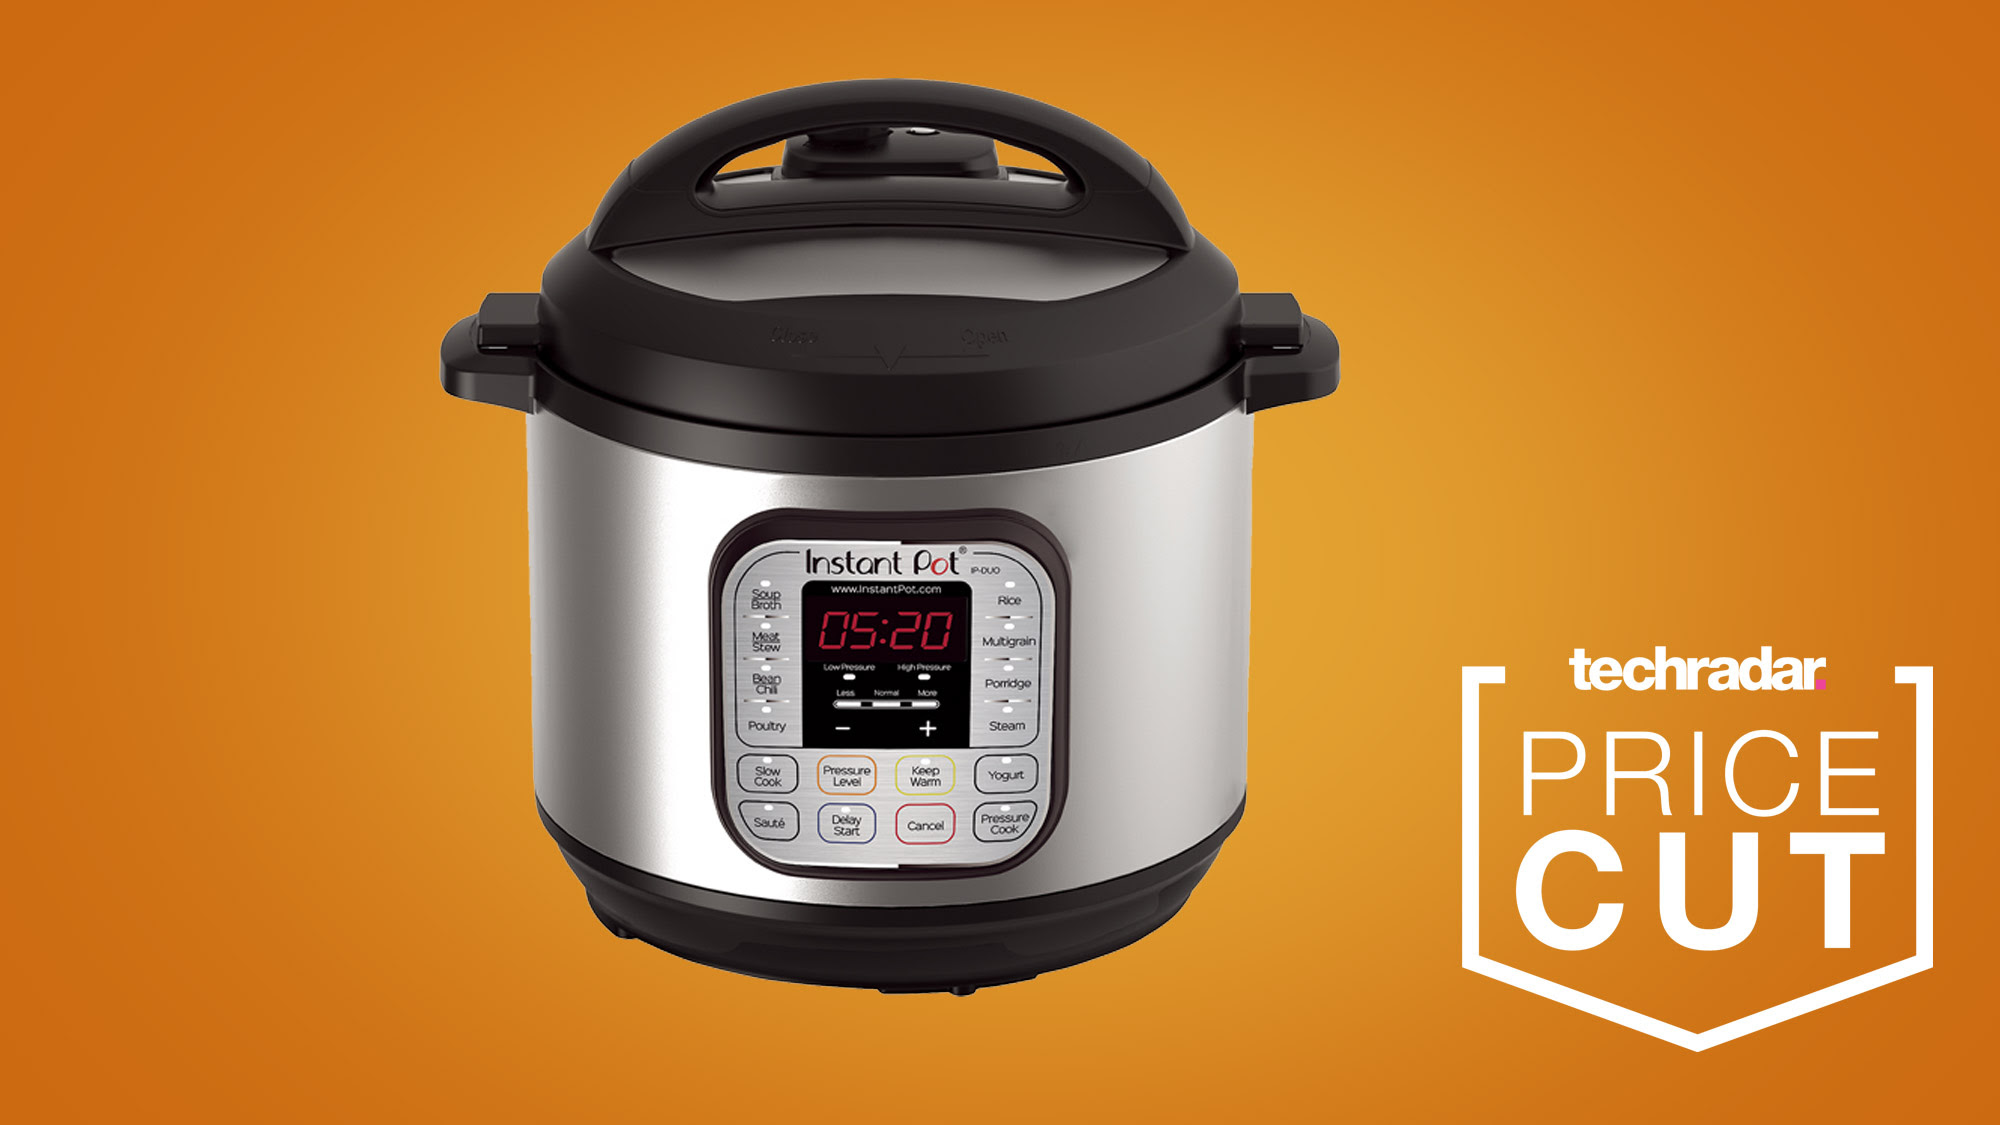 Instant Pot sale at Walmart: the Instant Pot Duo gets a Black Friday price cut